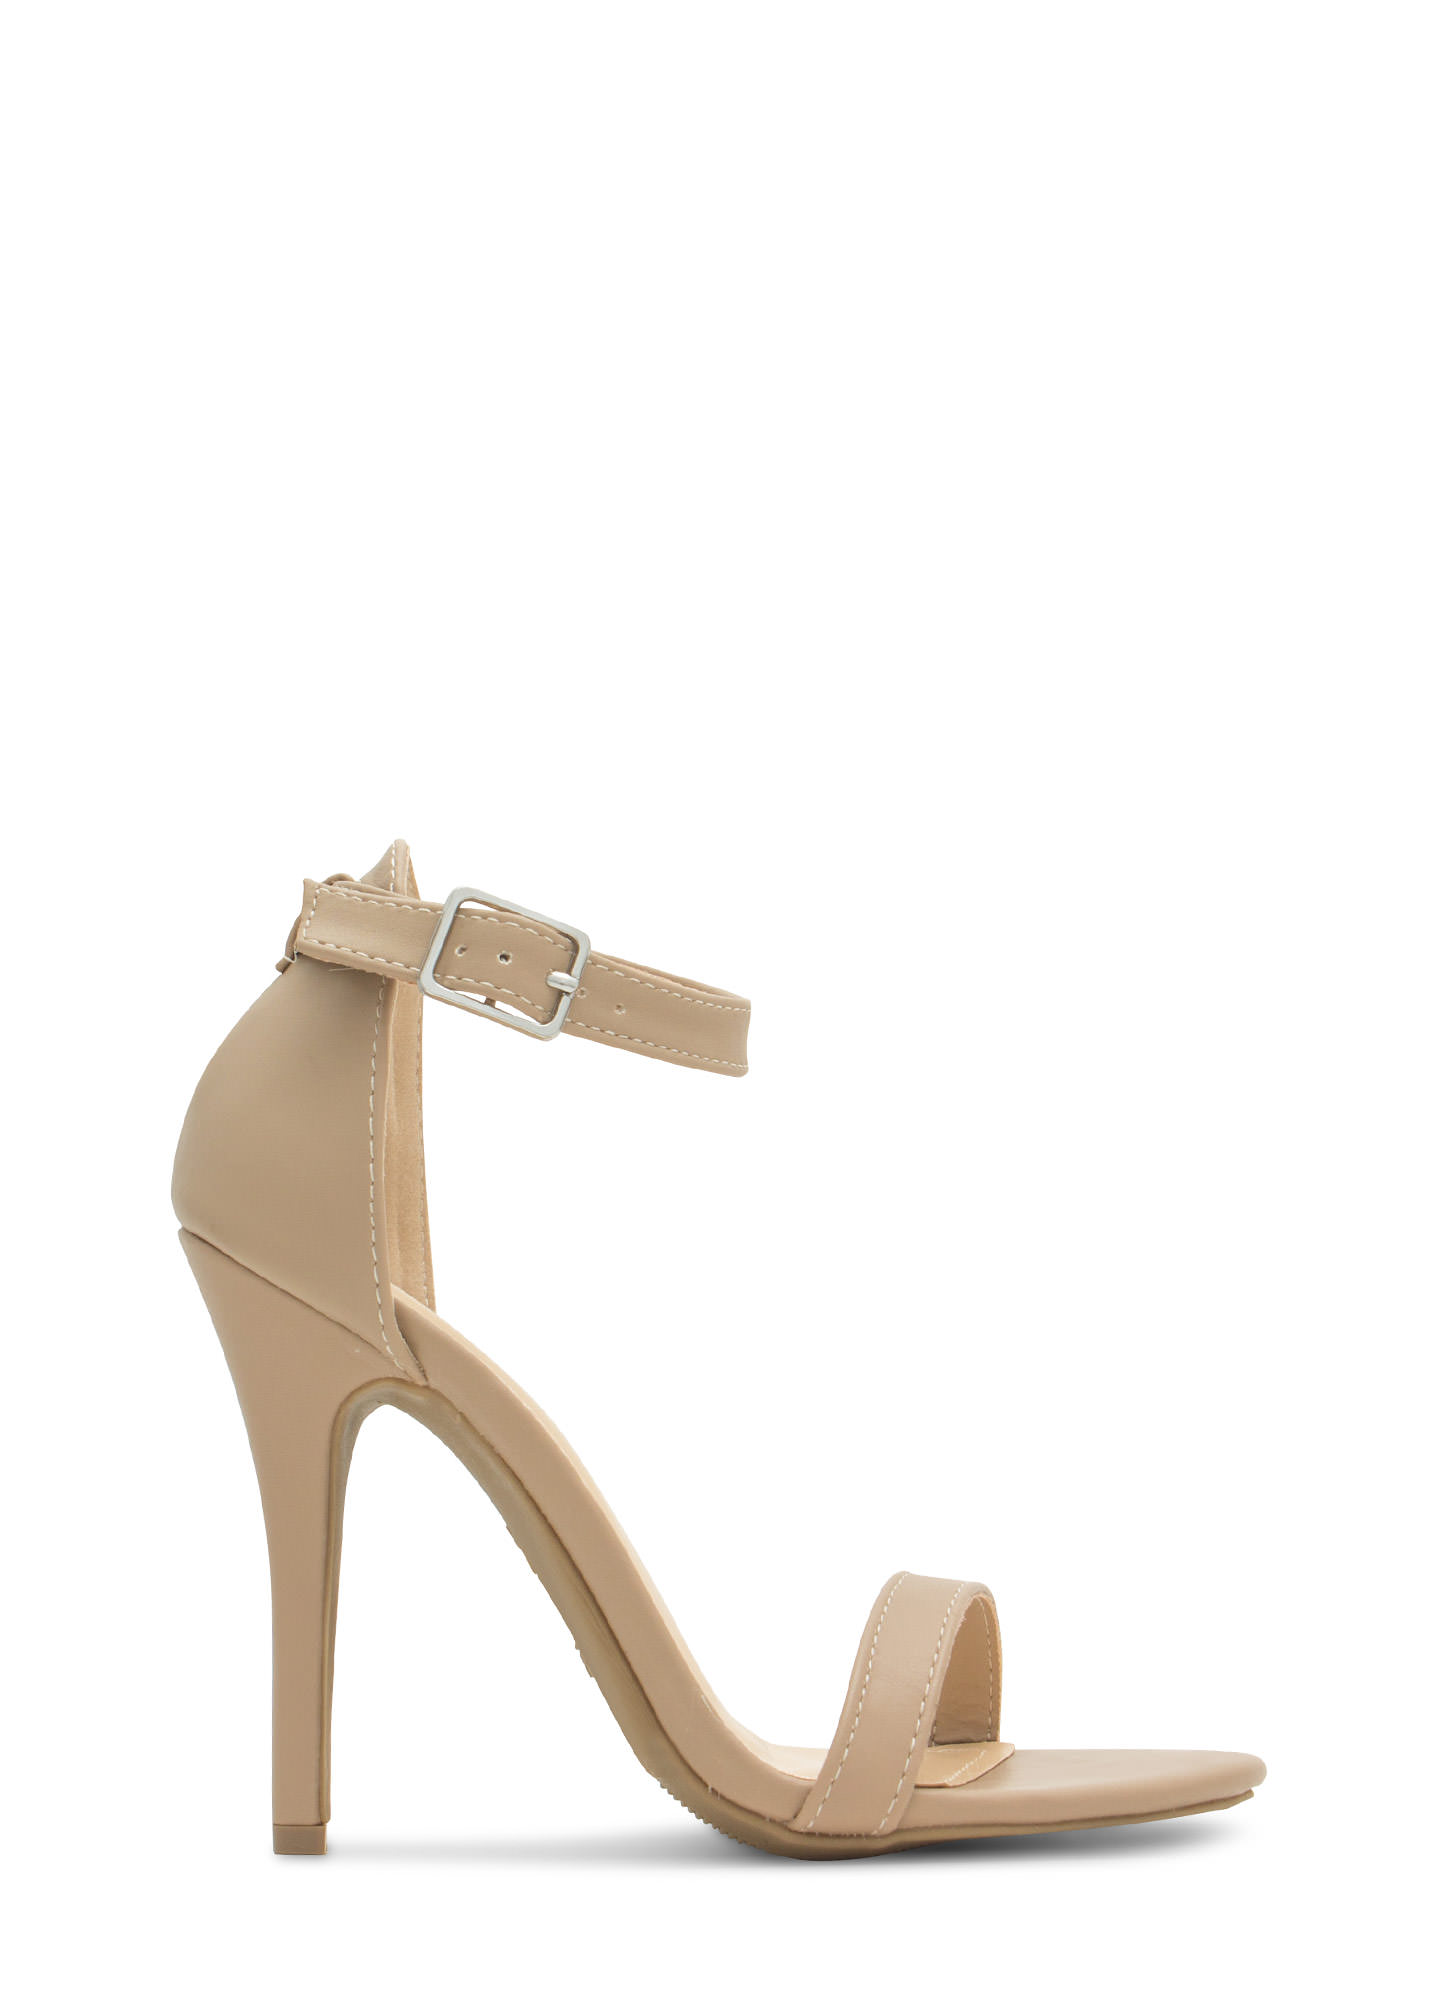 Strap-A-Thon Faux Leather Heels NUDE